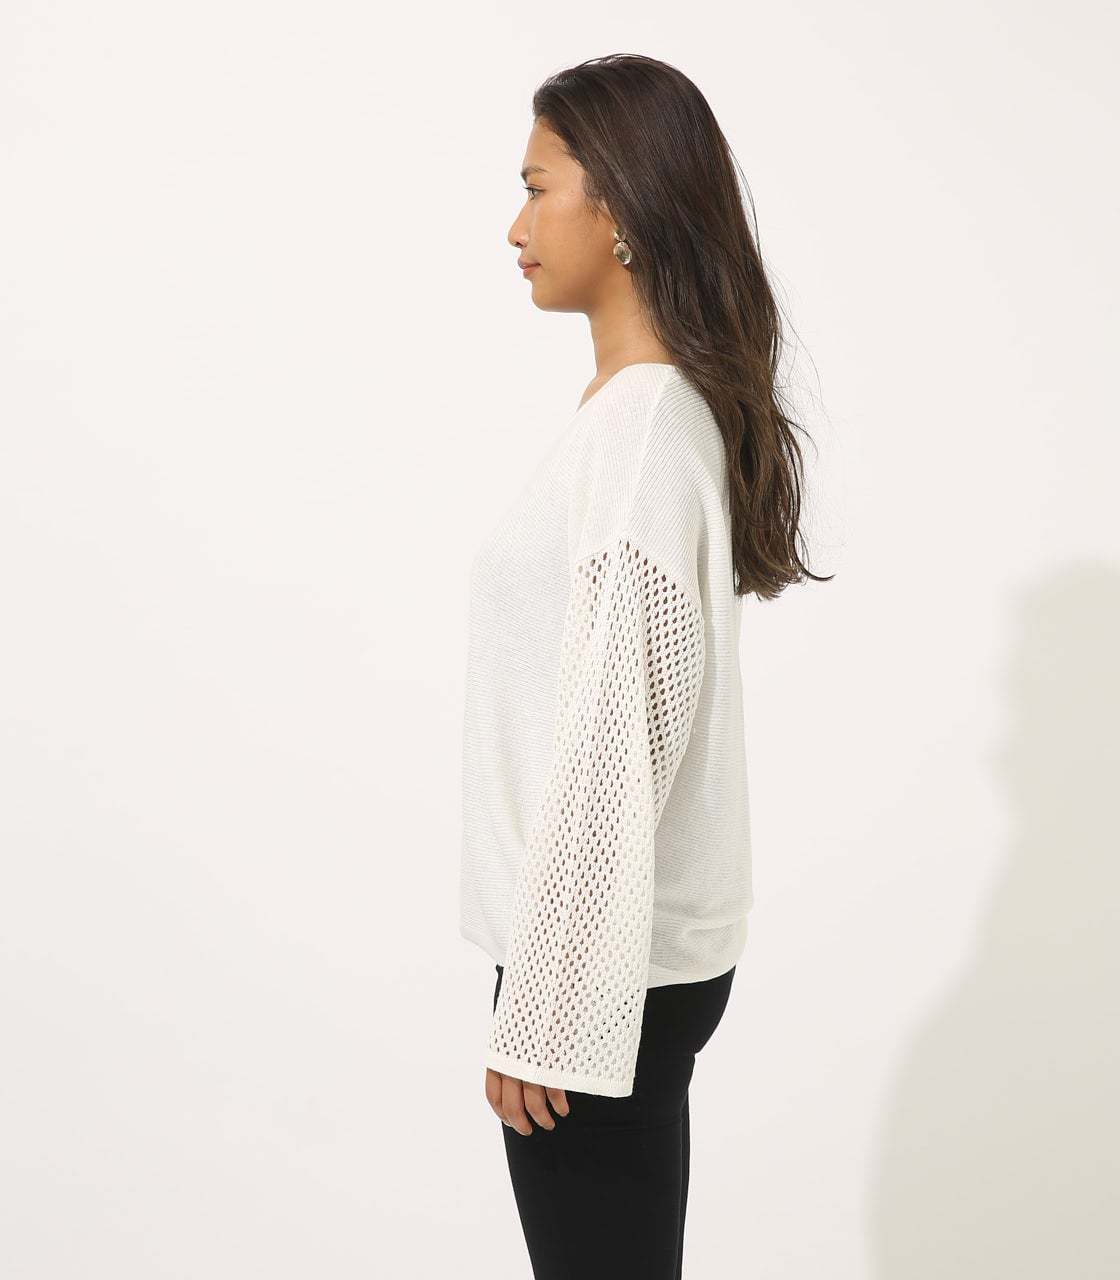 【AZUL BY MOUSSY】CROCHET SLEEVE KNIT TOPS 詳細画像 O/WHT 5